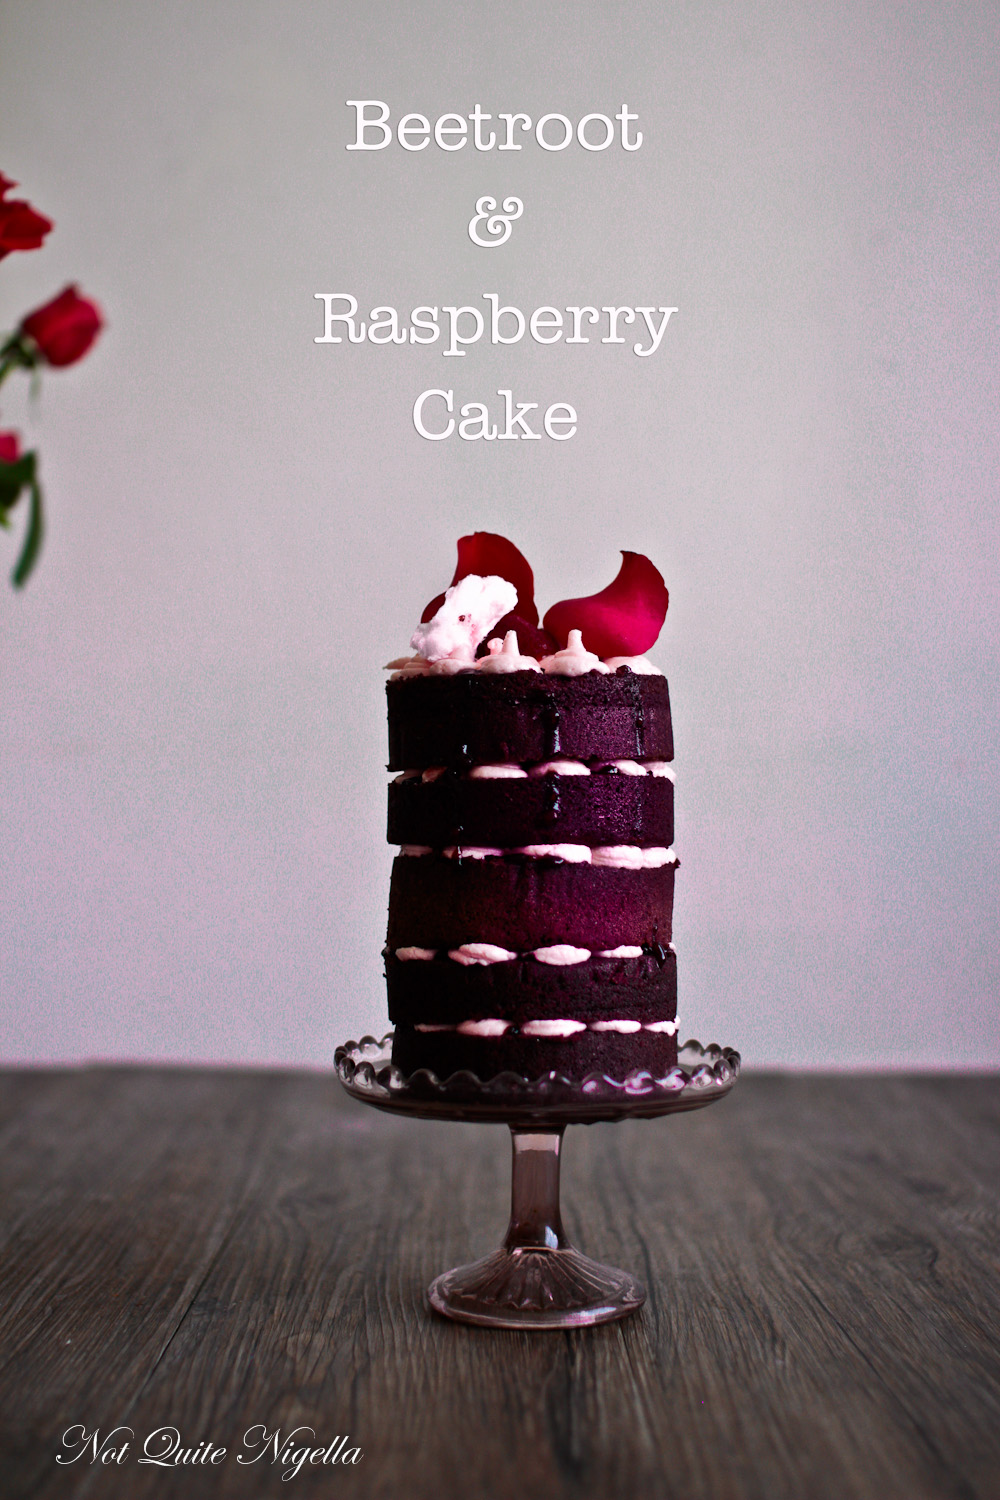 Beetroot Raspberry Cake